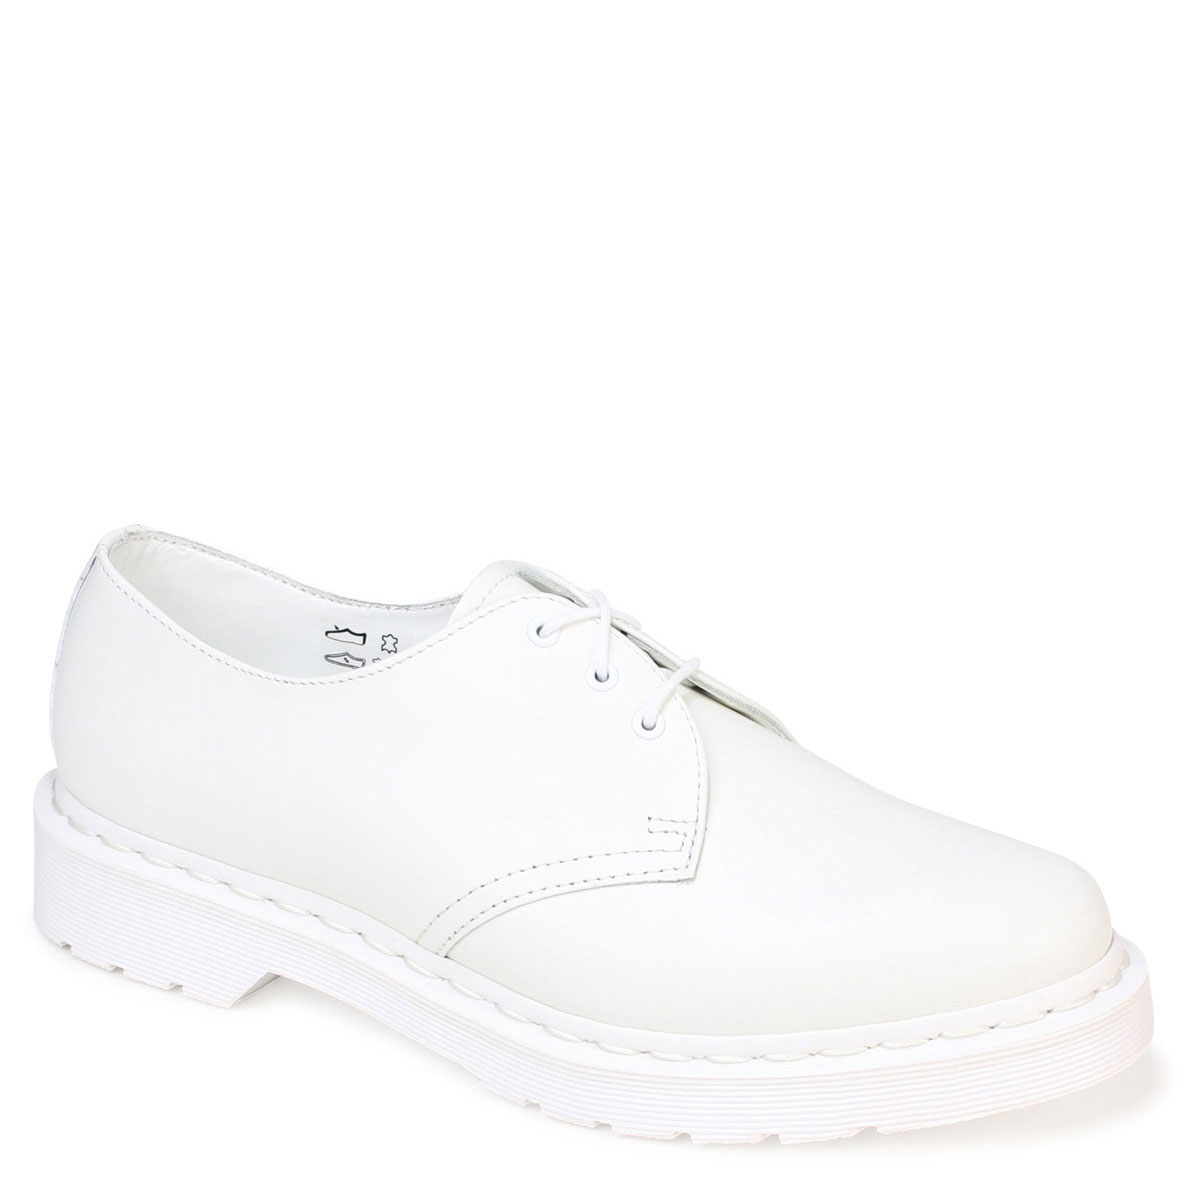 1461 3 Sold Out Doctor Martin Dr Martens Hall Shoes White R14346100 Core S Mousse Leather Men Gap Dis 3eye Shoe Uni Regular